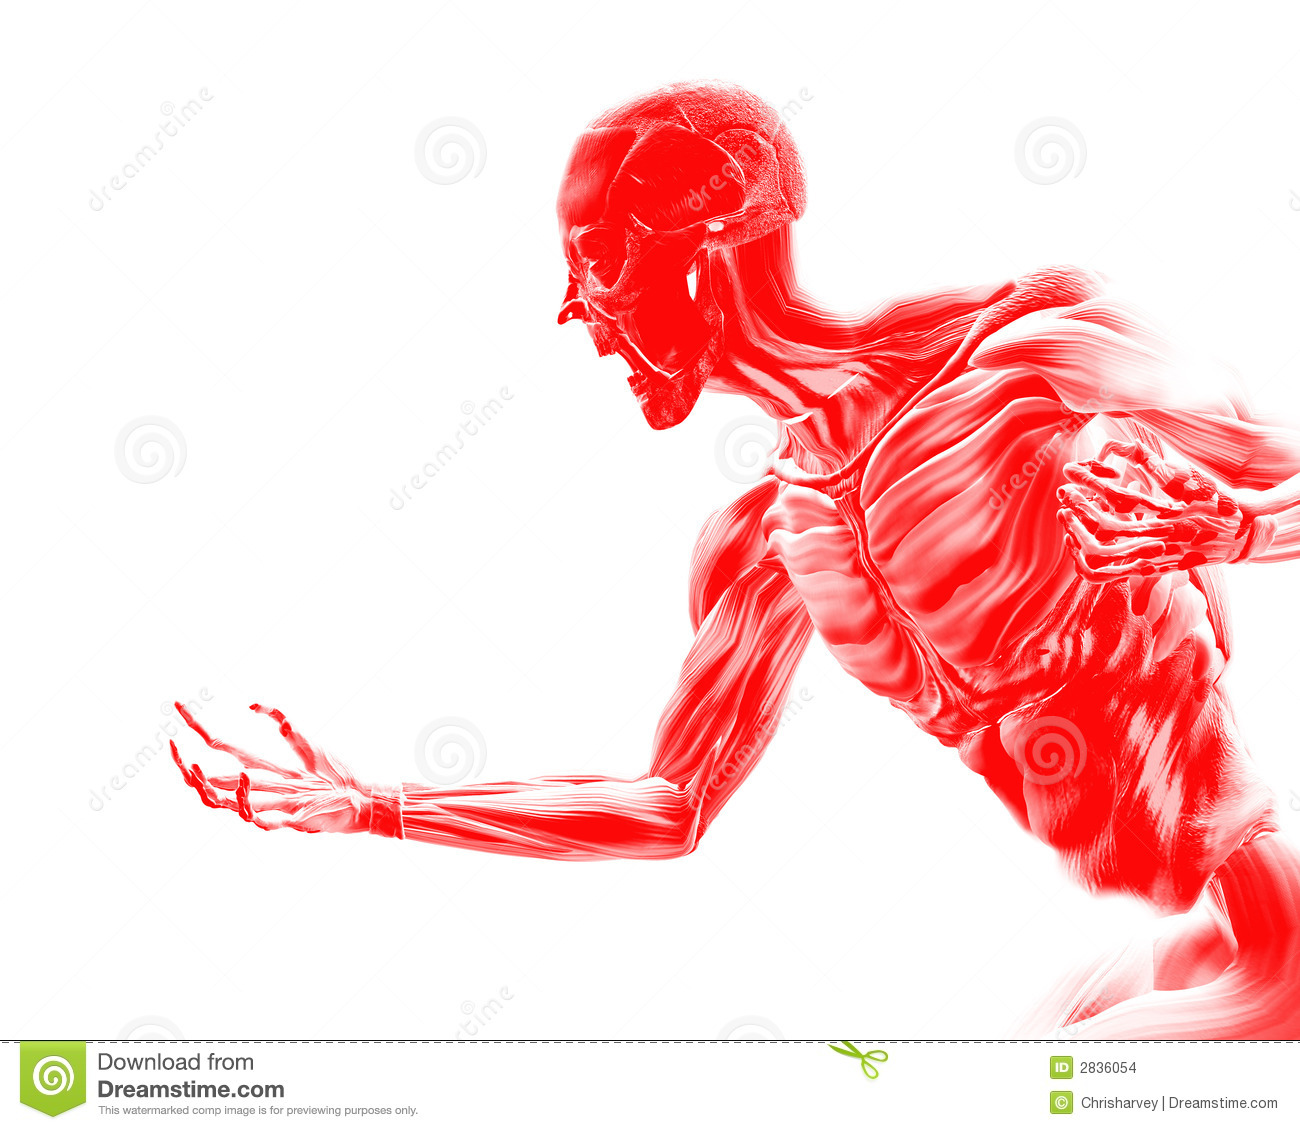 muscles on human body 16 royalty free stock image - image: 3173636, Muscles